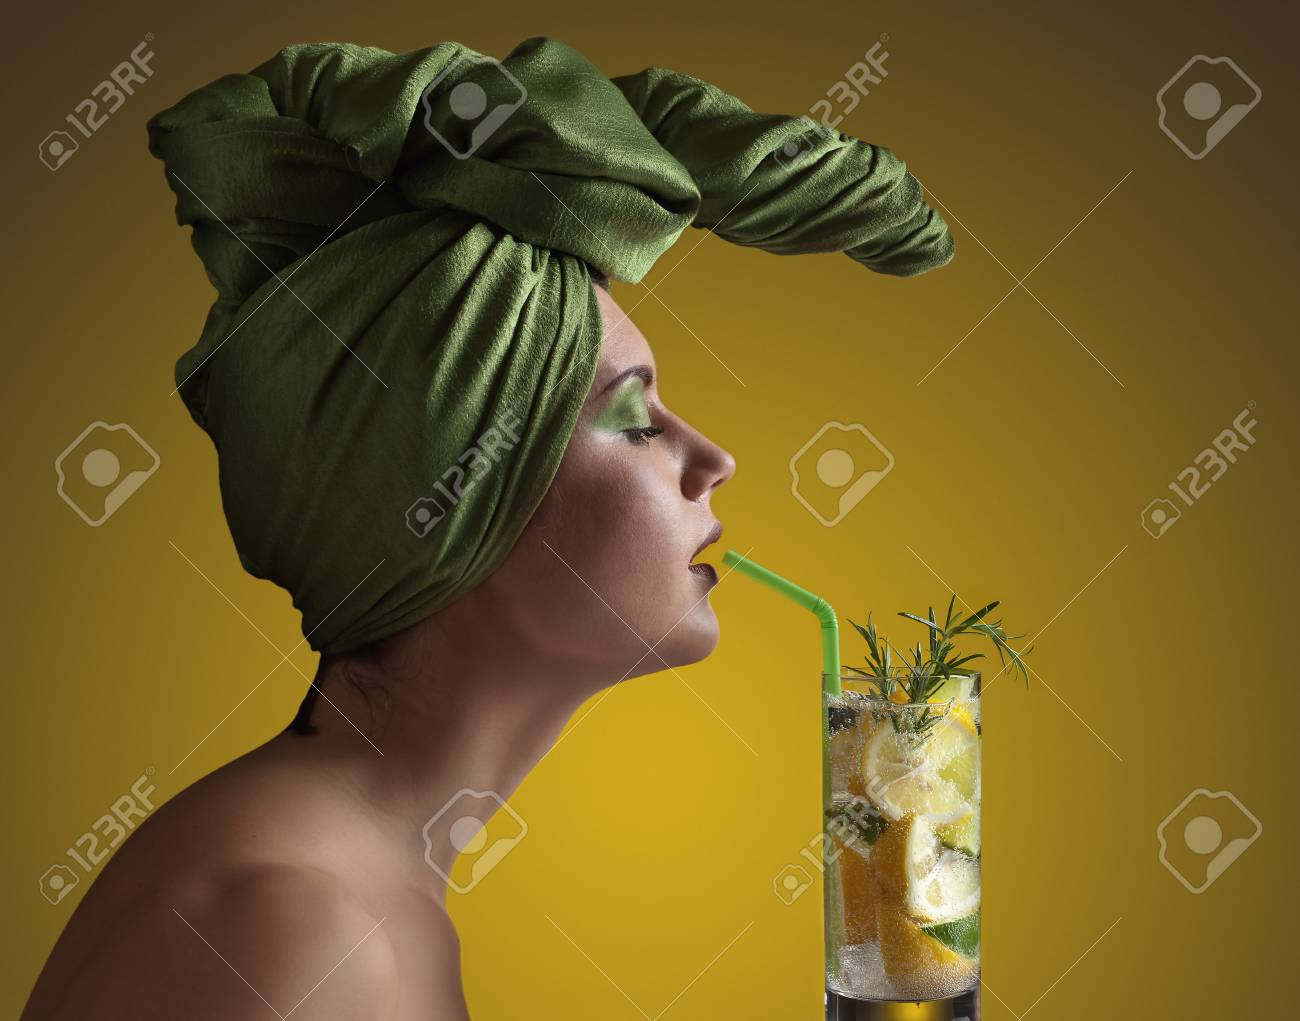 Grande Stock Photo Young Woman A Cocktail Young Woman A Cocktail Stock Photo Art Dco Green Turban Green Turban Meaning A Green Turban A Green Turban houzz 01 The Green Turban